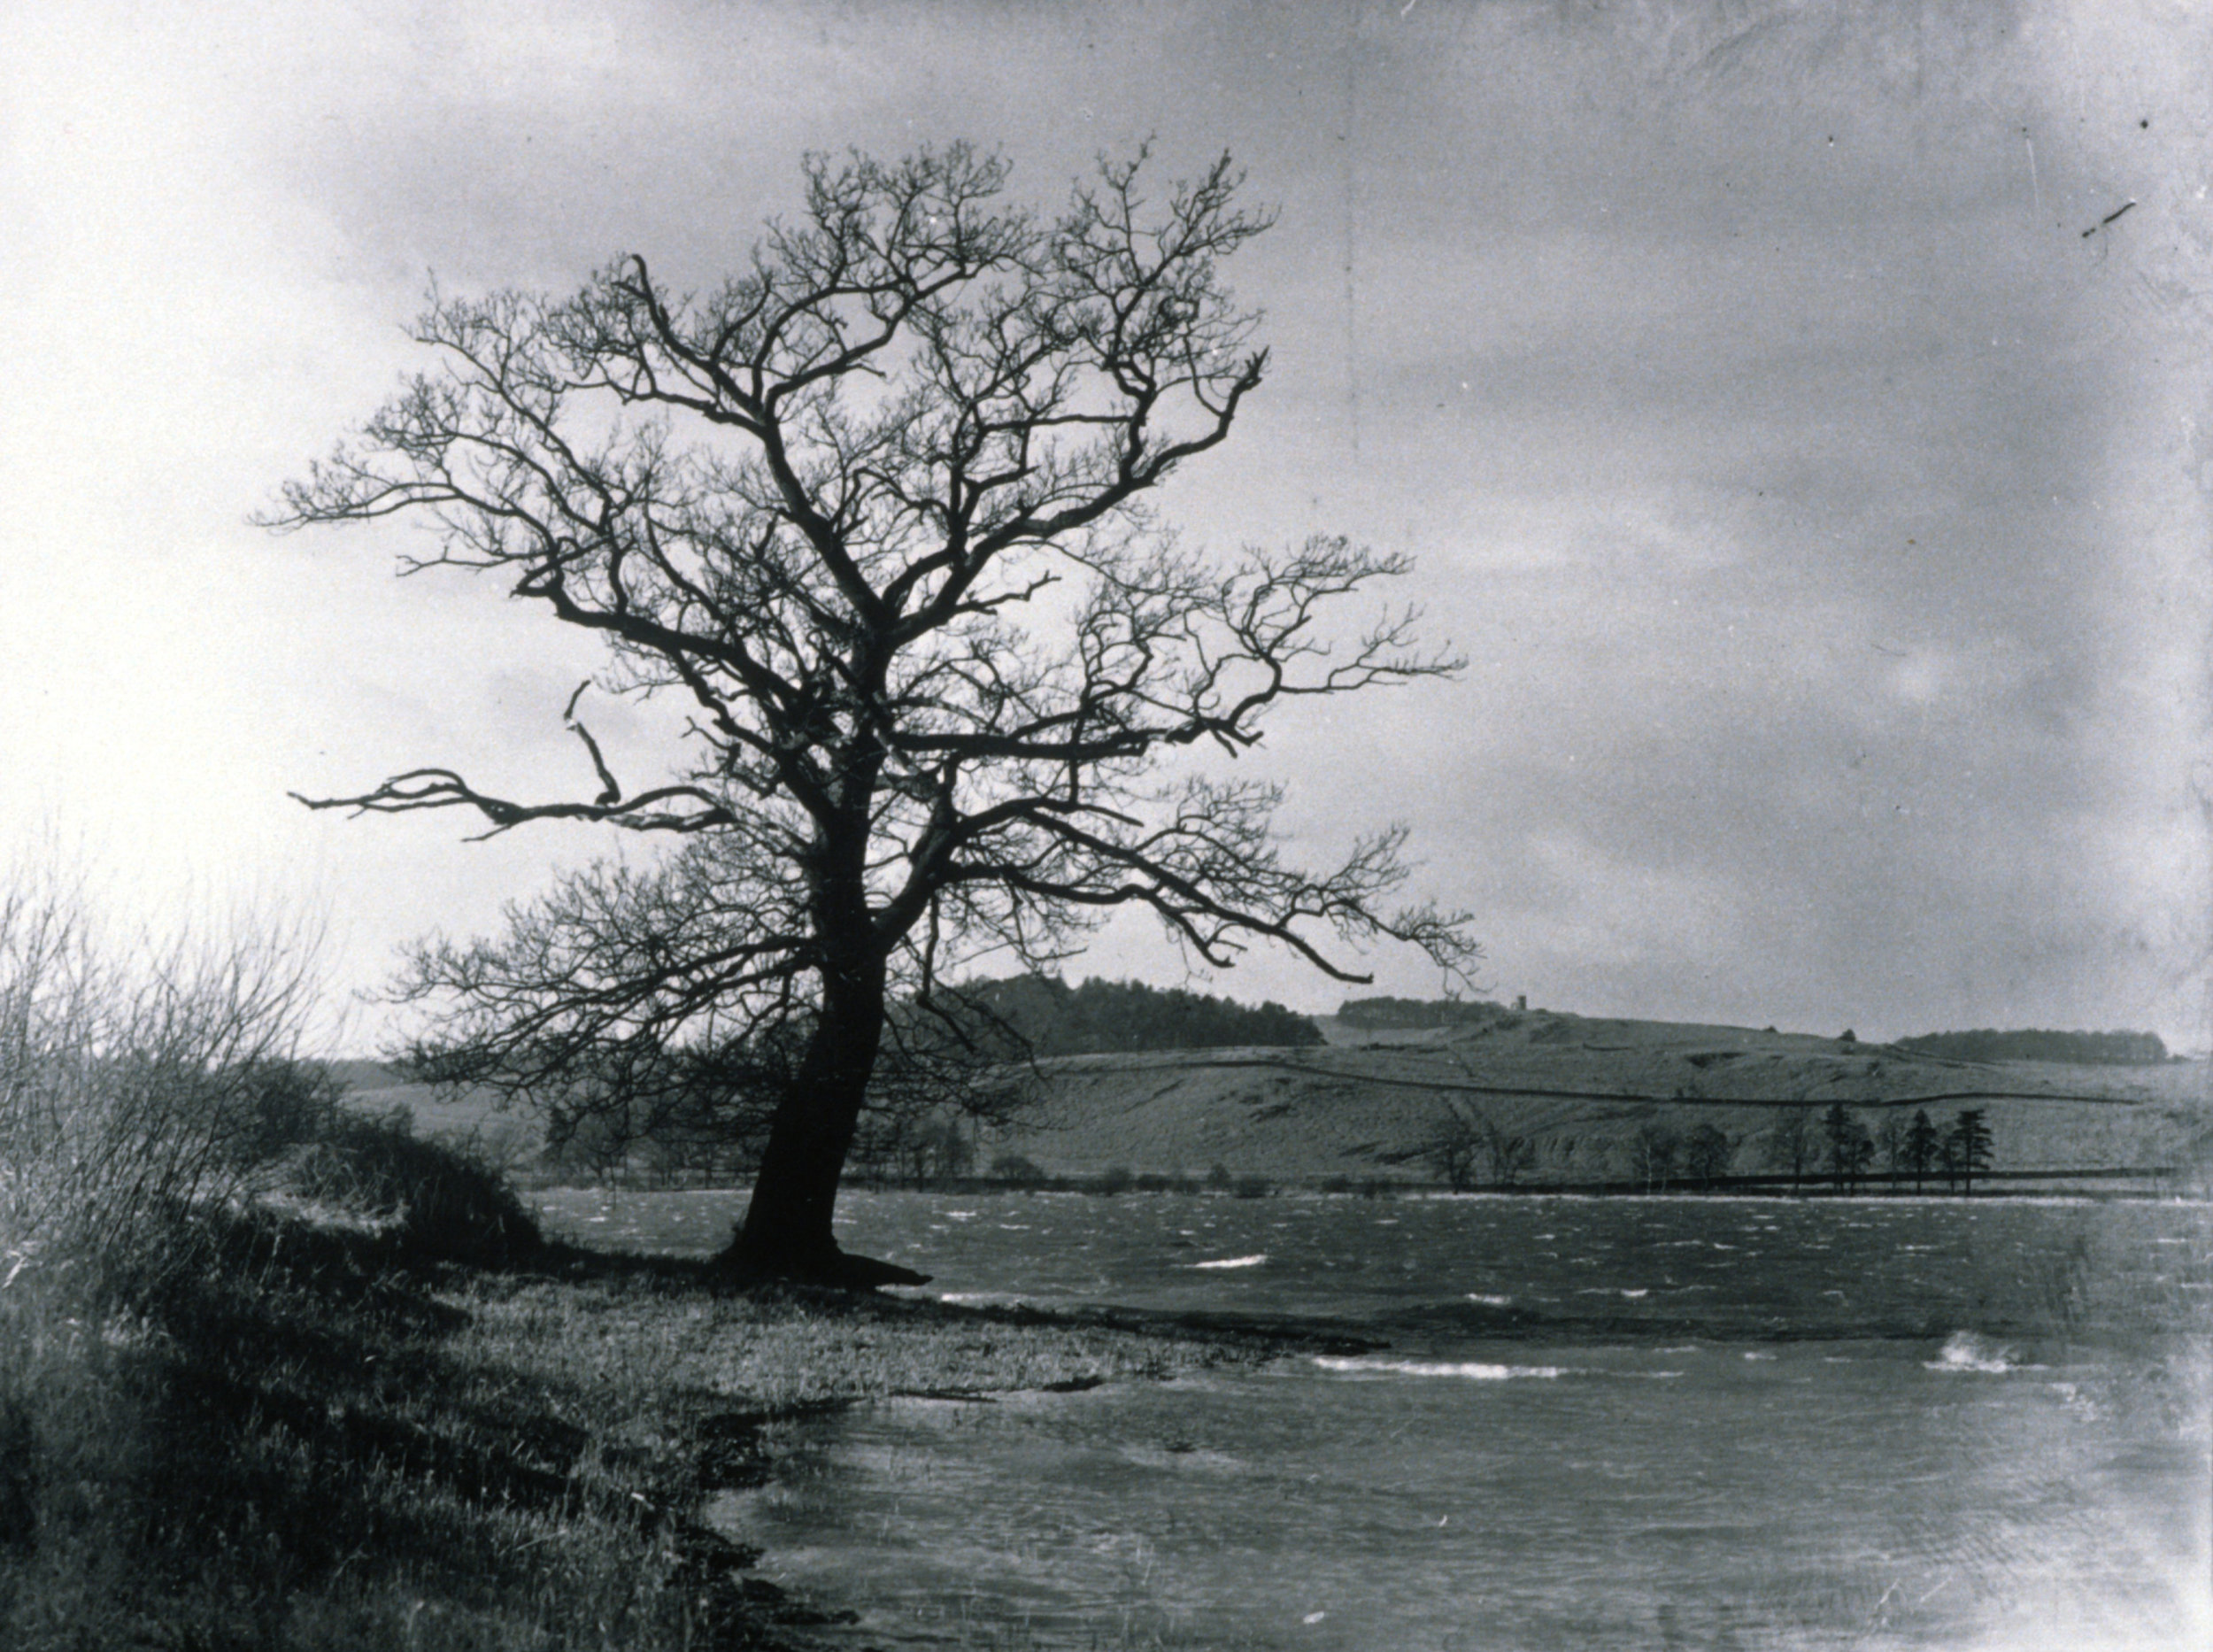 Photograph by F.L. Attenborough, date  and location unknown. Made while journeying with historian W.G. Hoskins, author of 'The making of the English landscape'. With permission of the Centre for English Local History, University of Leicester.